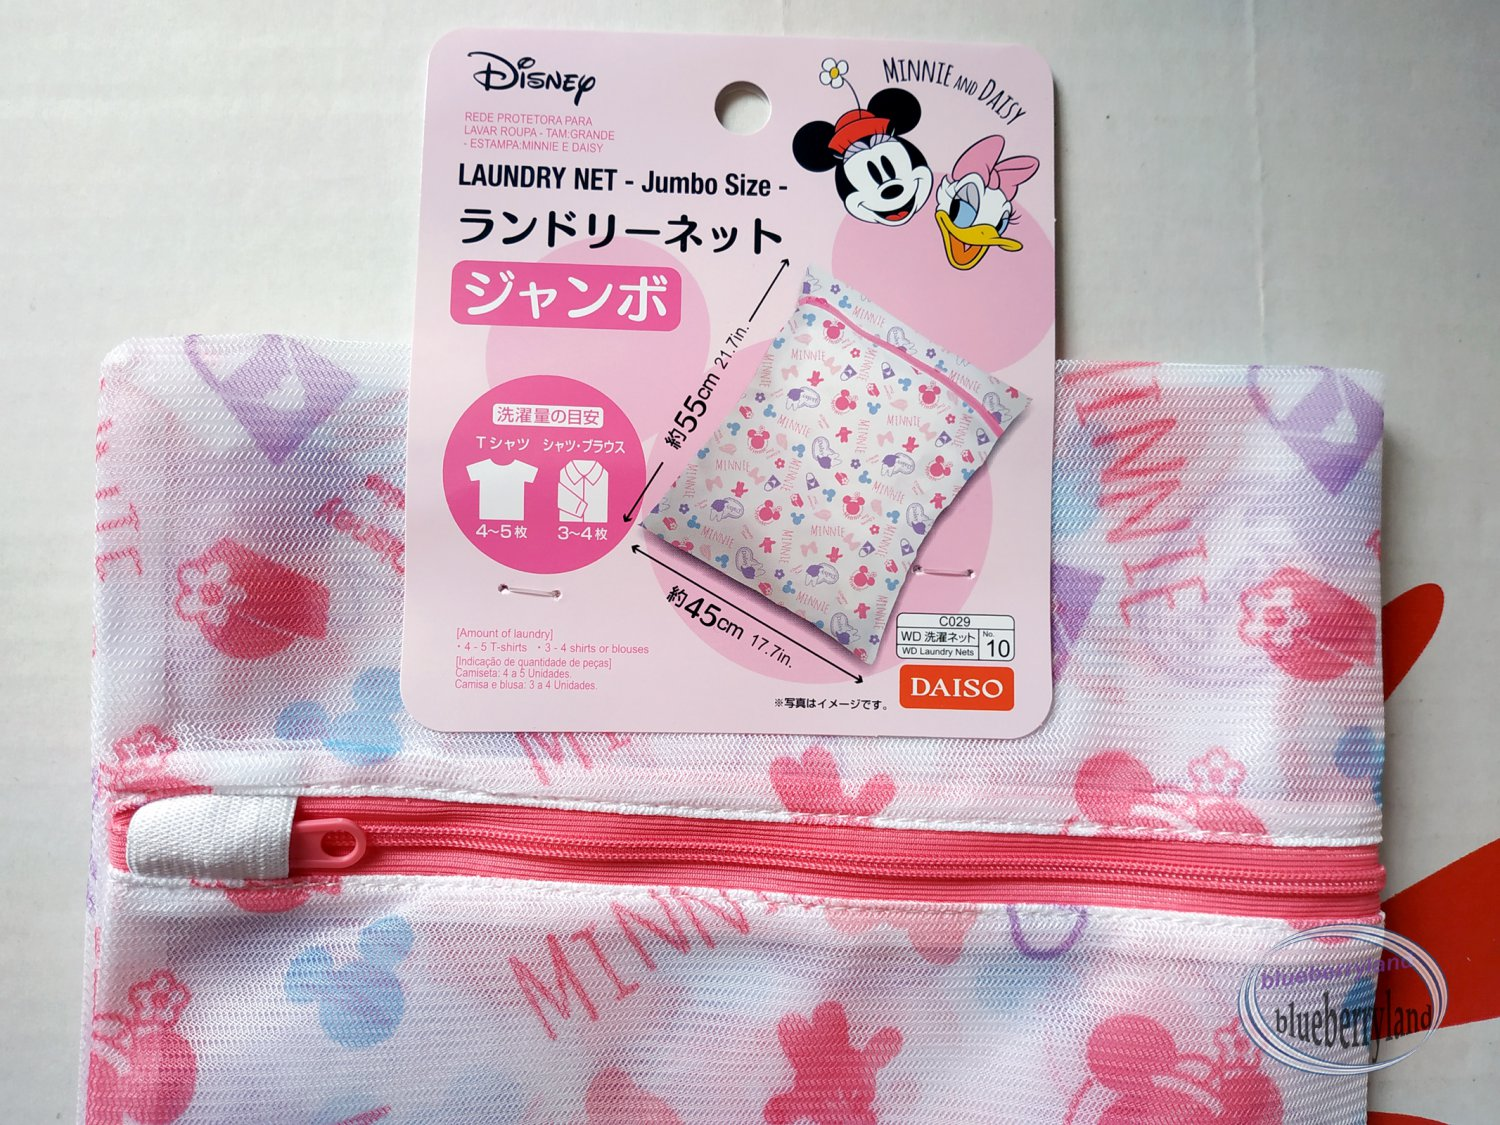 Disney Minnie Mouse Laundry Bra Underwear Net Care Wash Bag ladies Delicate Lingerie